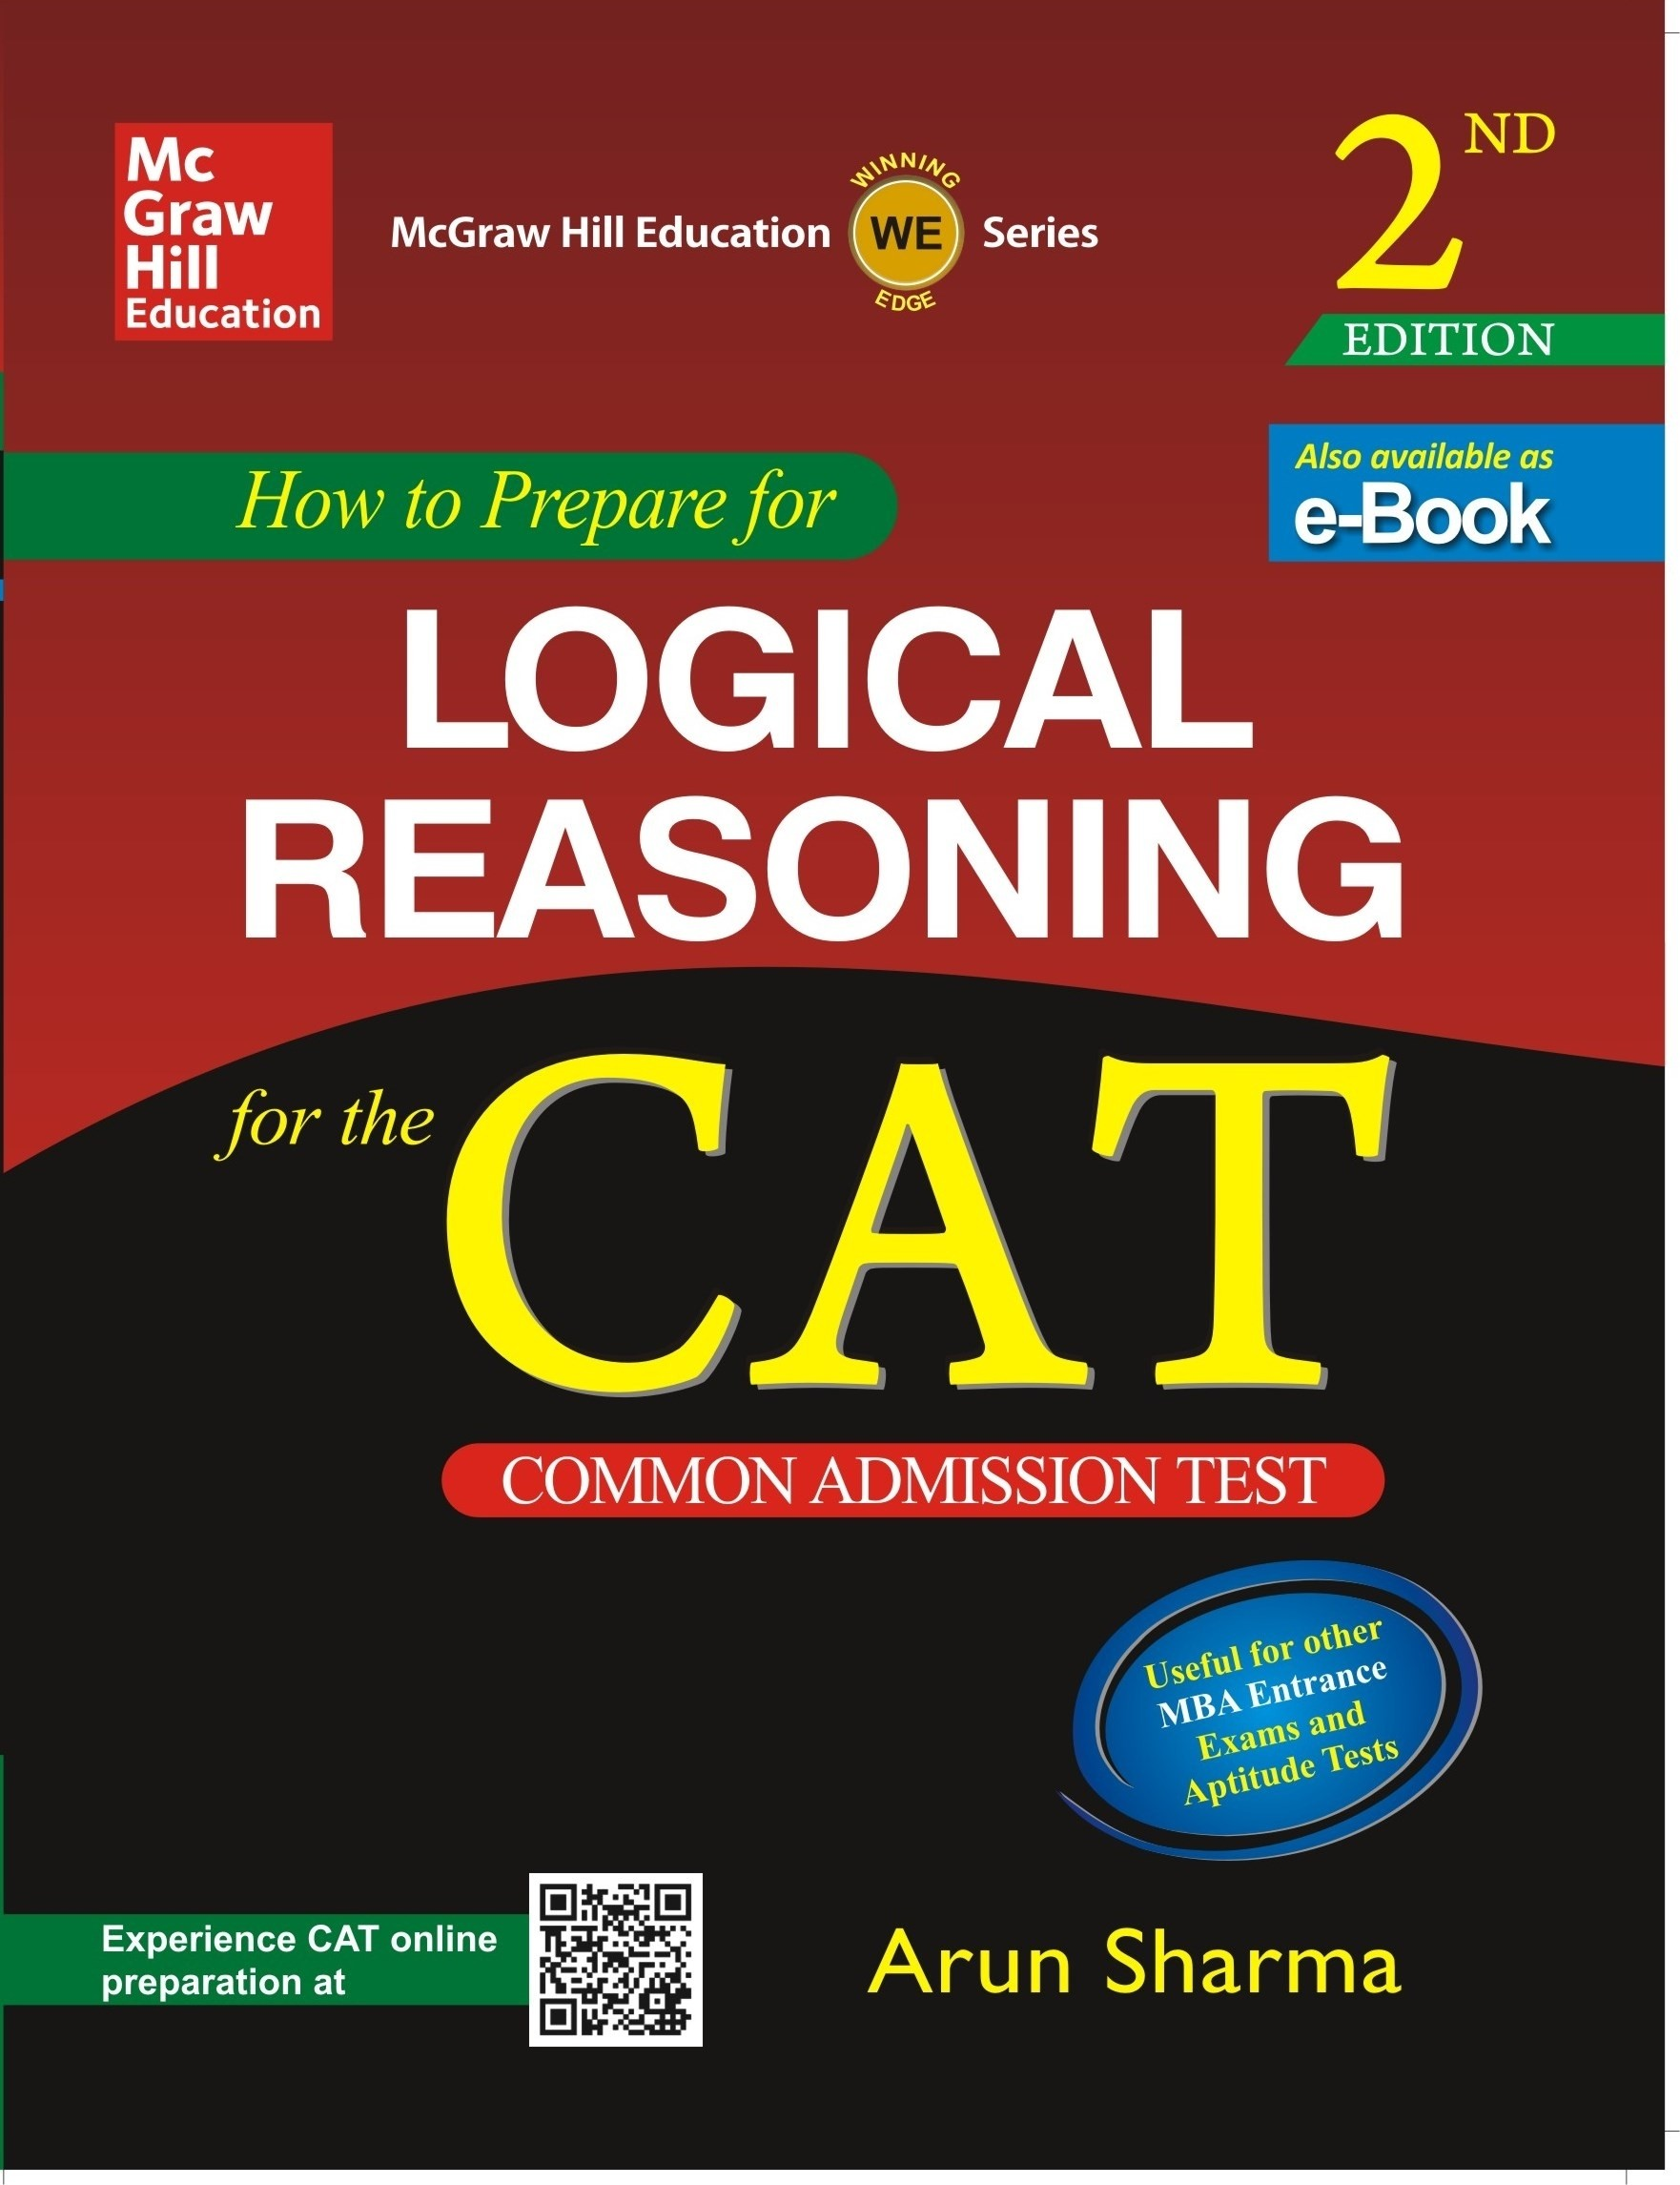 RS Aggarwal Reasoning Book PDF Download in Hindi & English